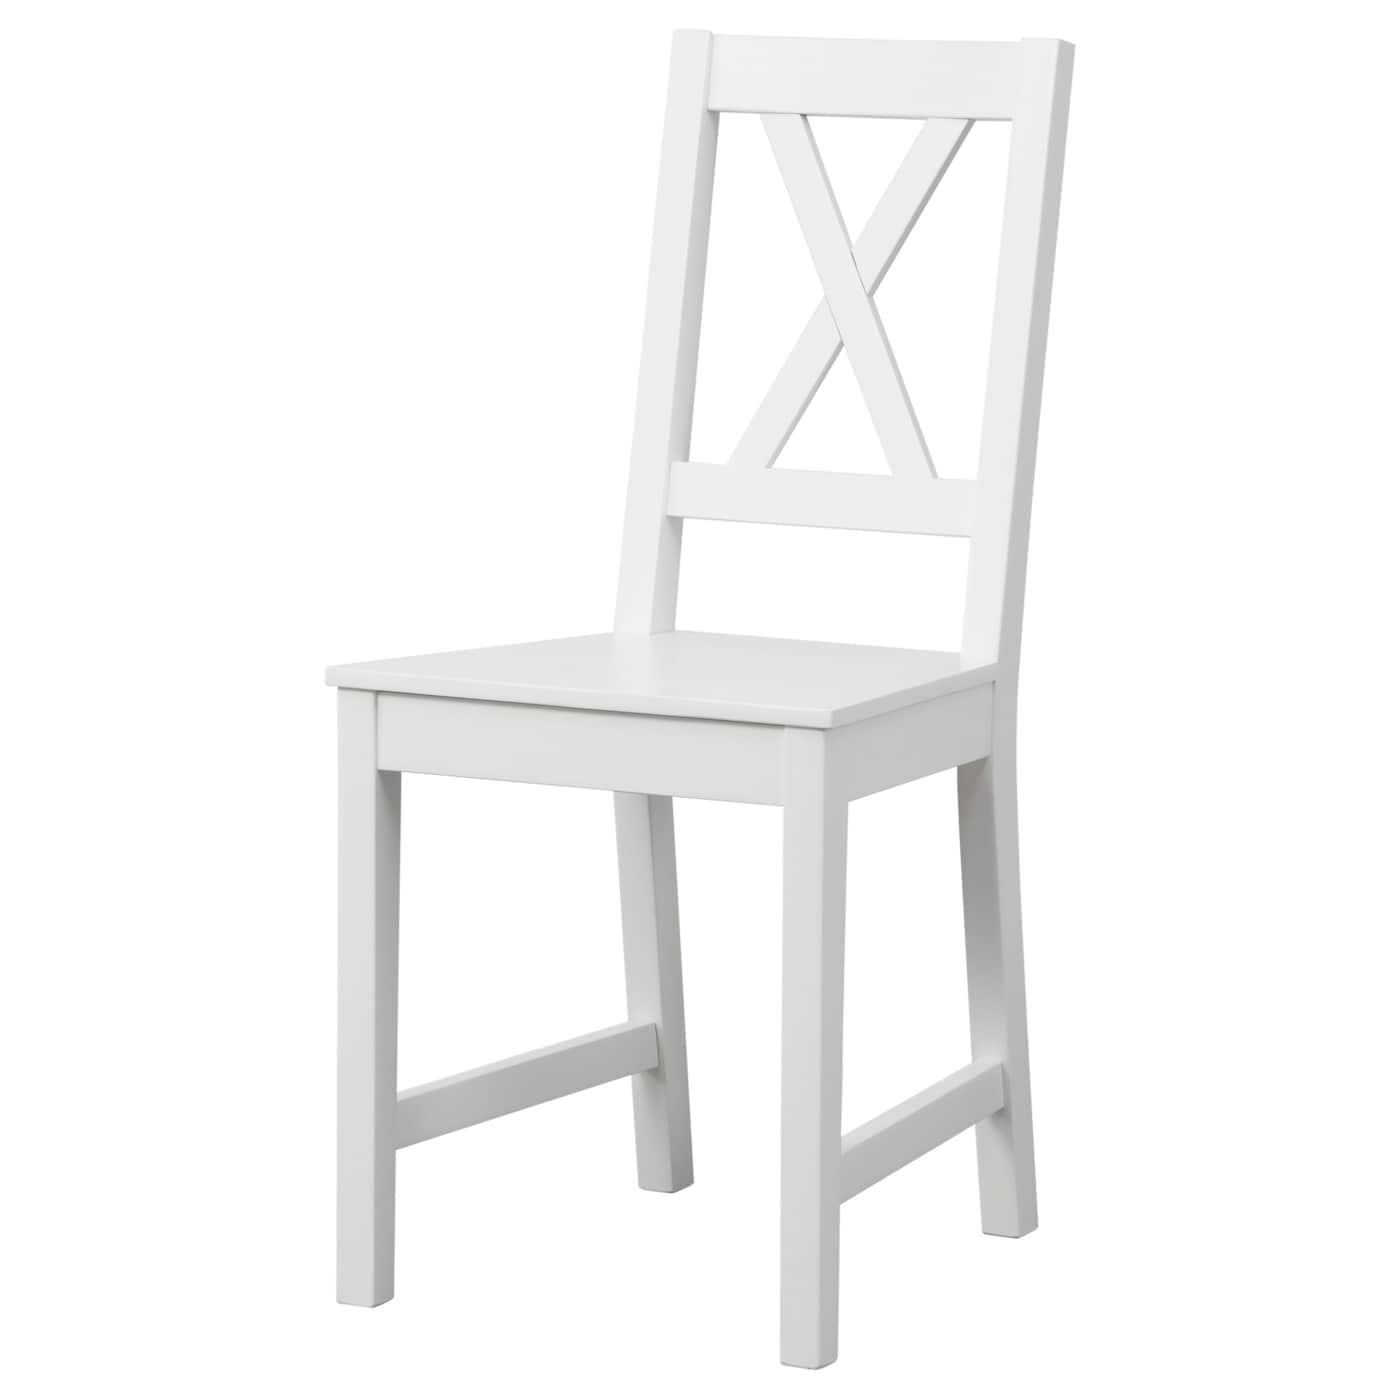 Bassalt chair white ikea for Design stuhl ikea